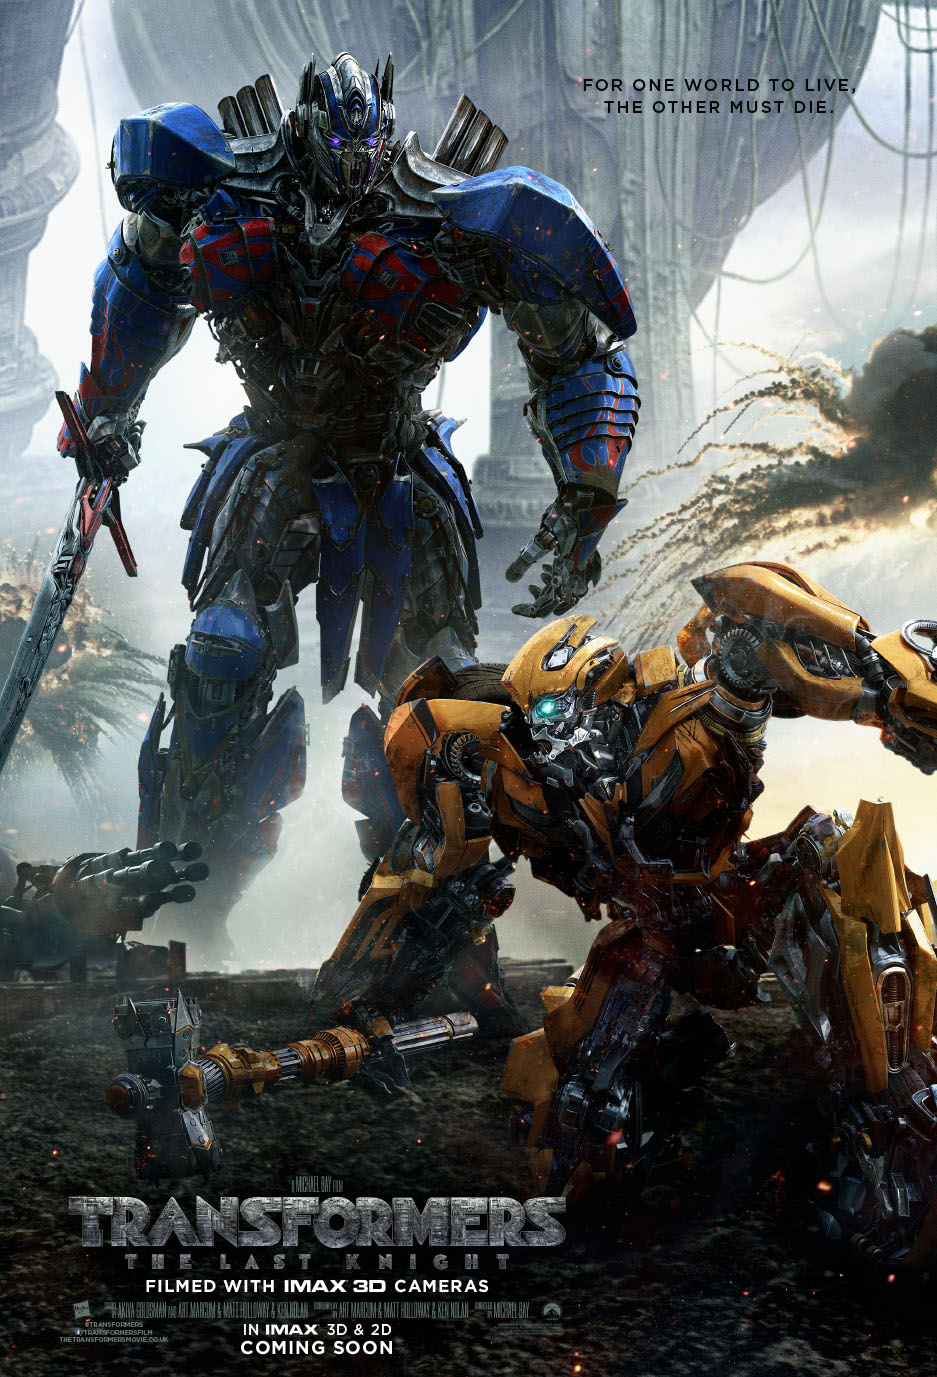 New Footage For Transformers: The Last Knight Expected To Air During MTV Awards